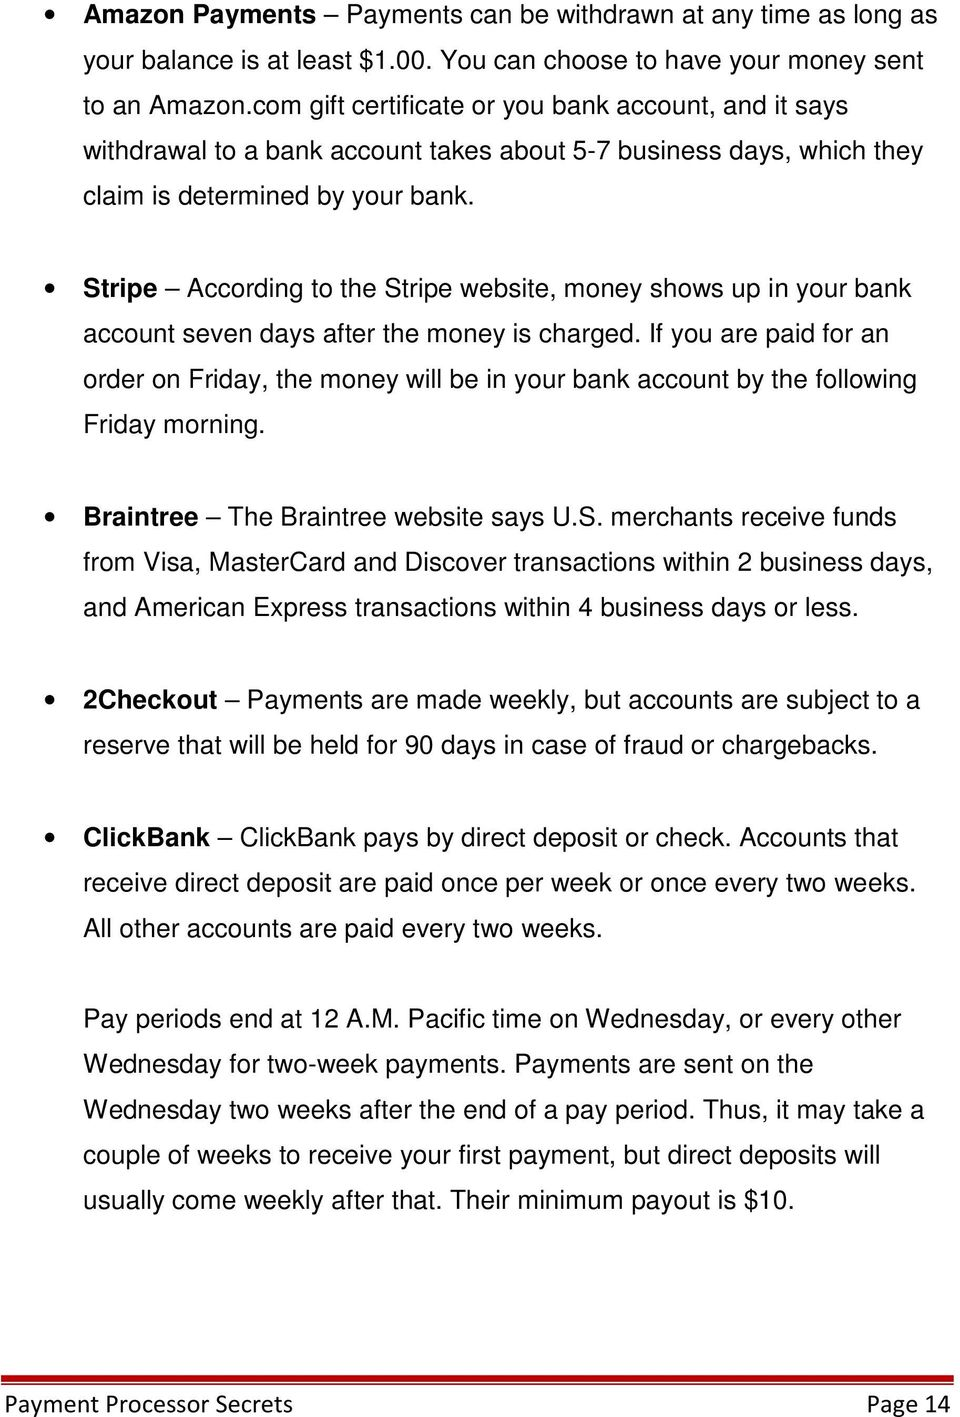 Stripe According to the Stripe website, money shows up in your bank account seven days after the money is charged.